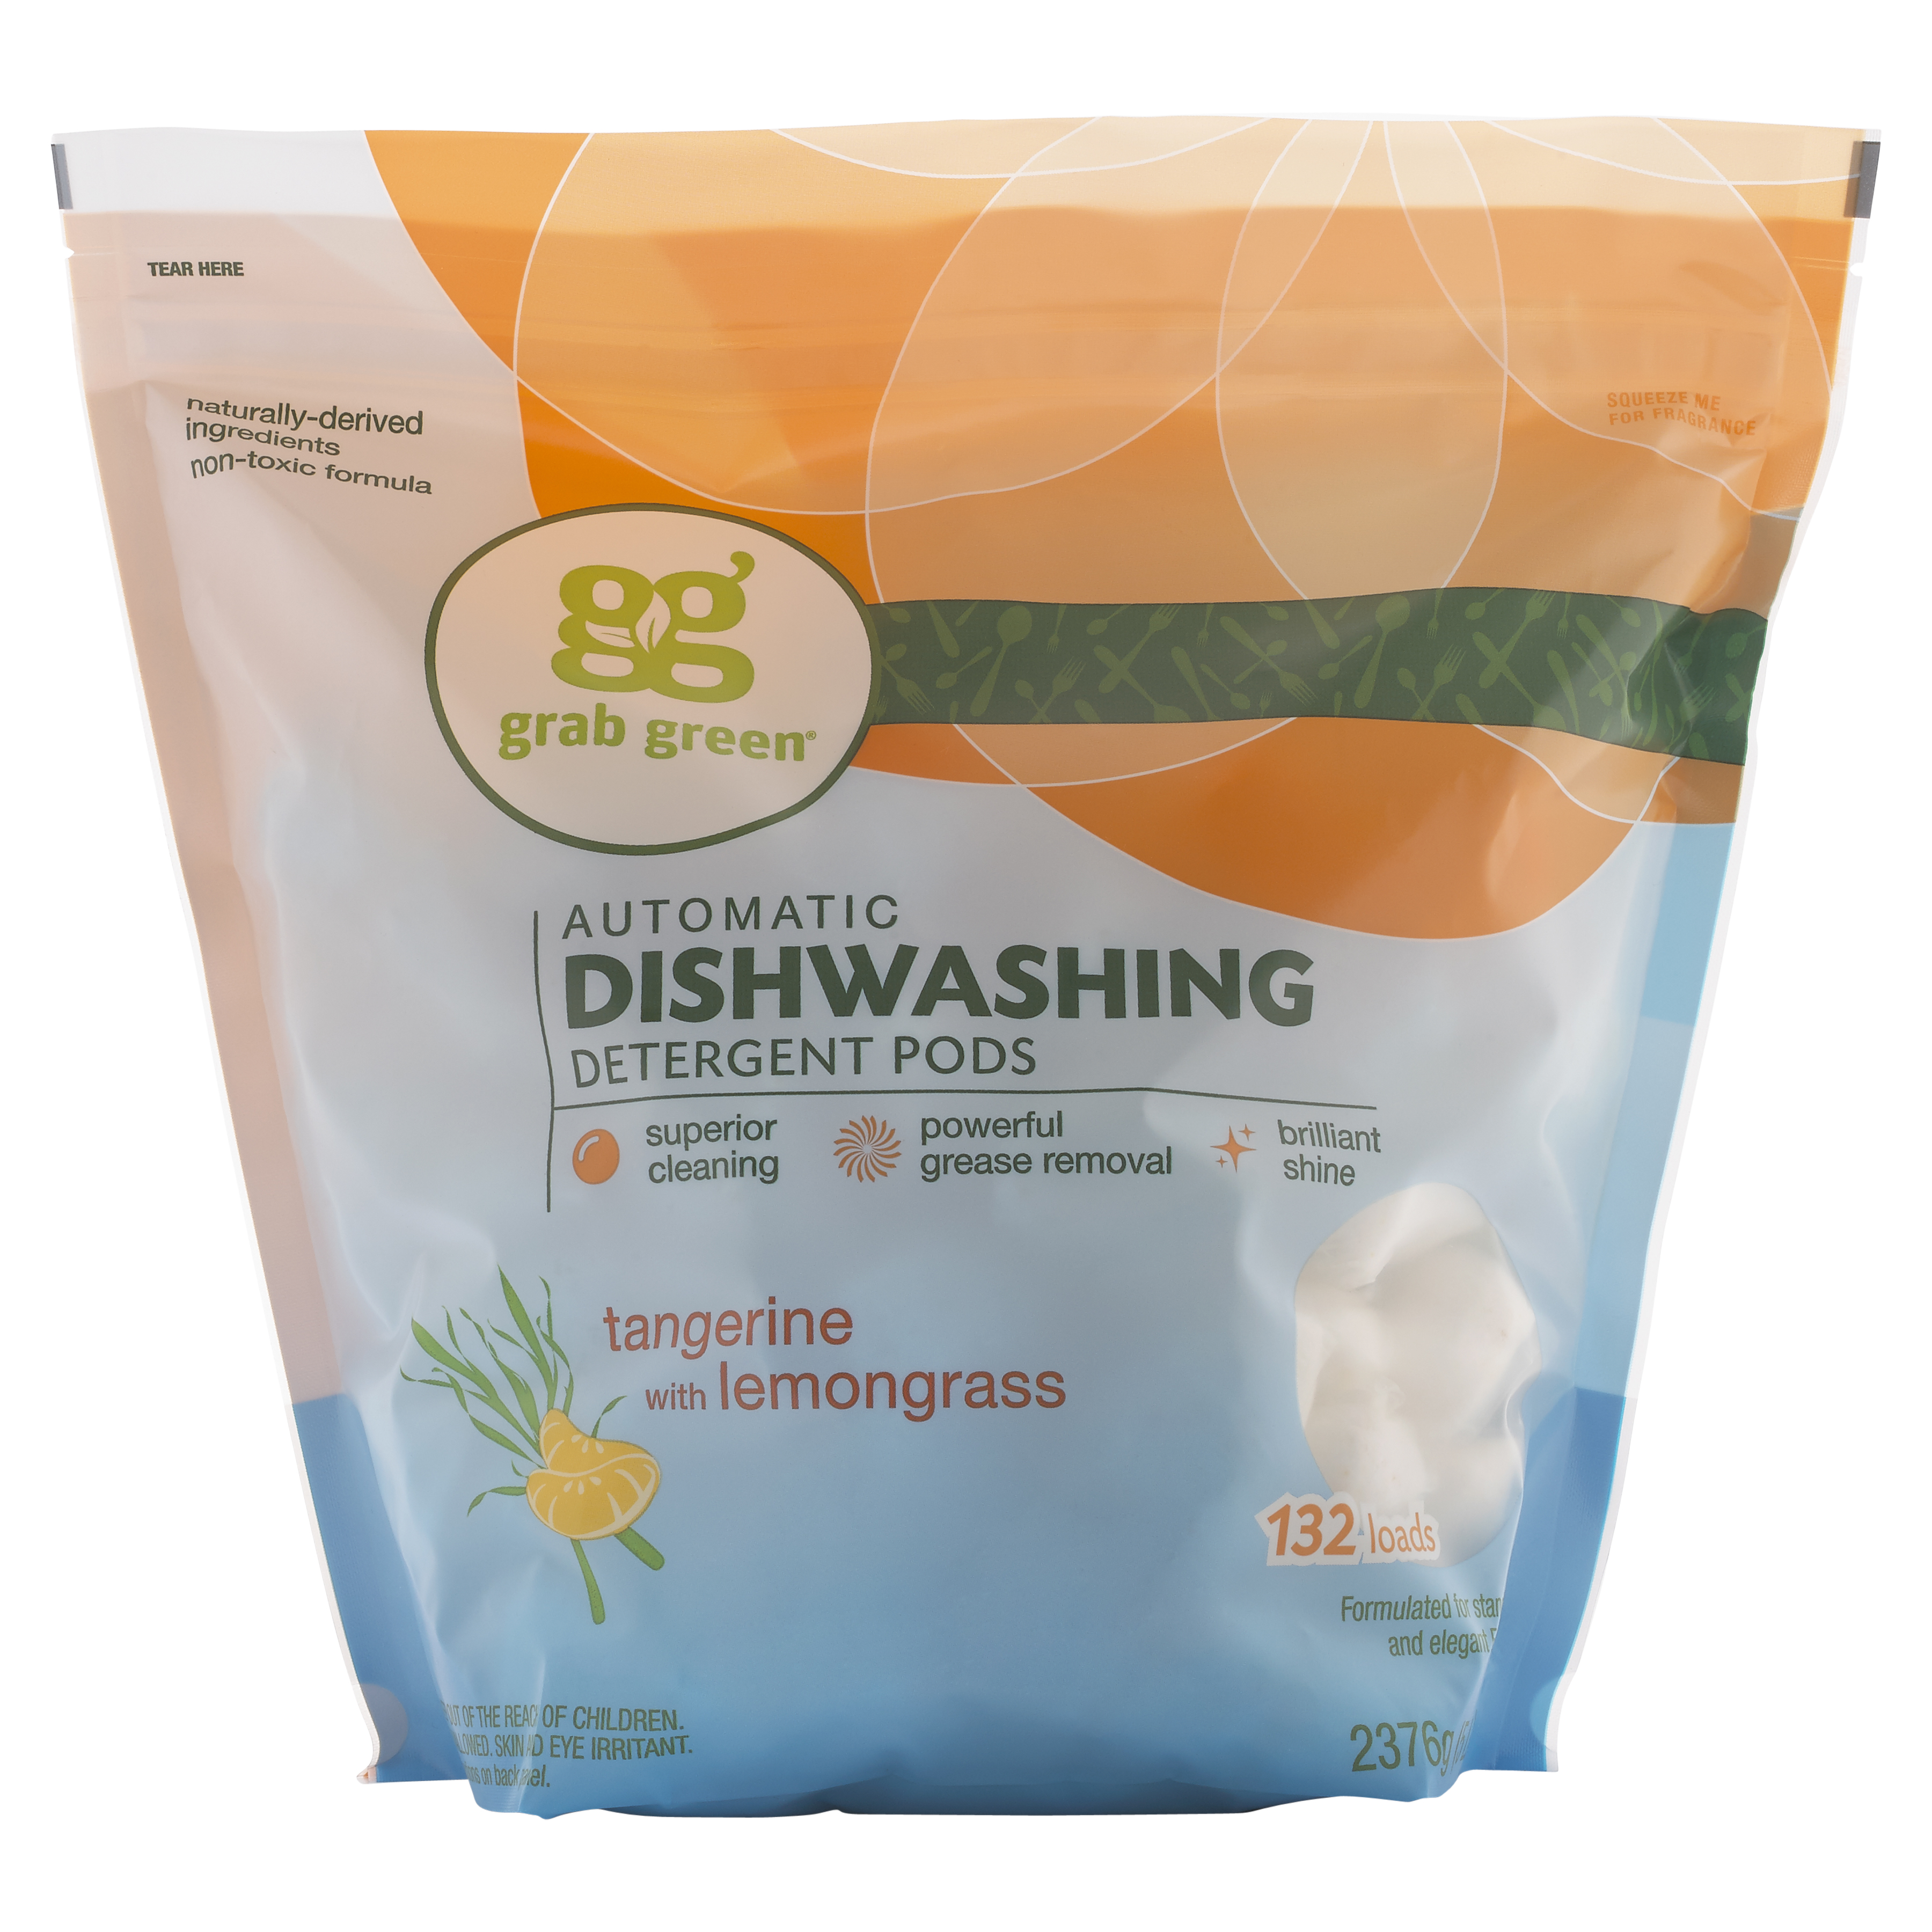 Grab Green Automatic Dishwashing Detergent Pods, Tangerine with Lemongrass, 132 Count